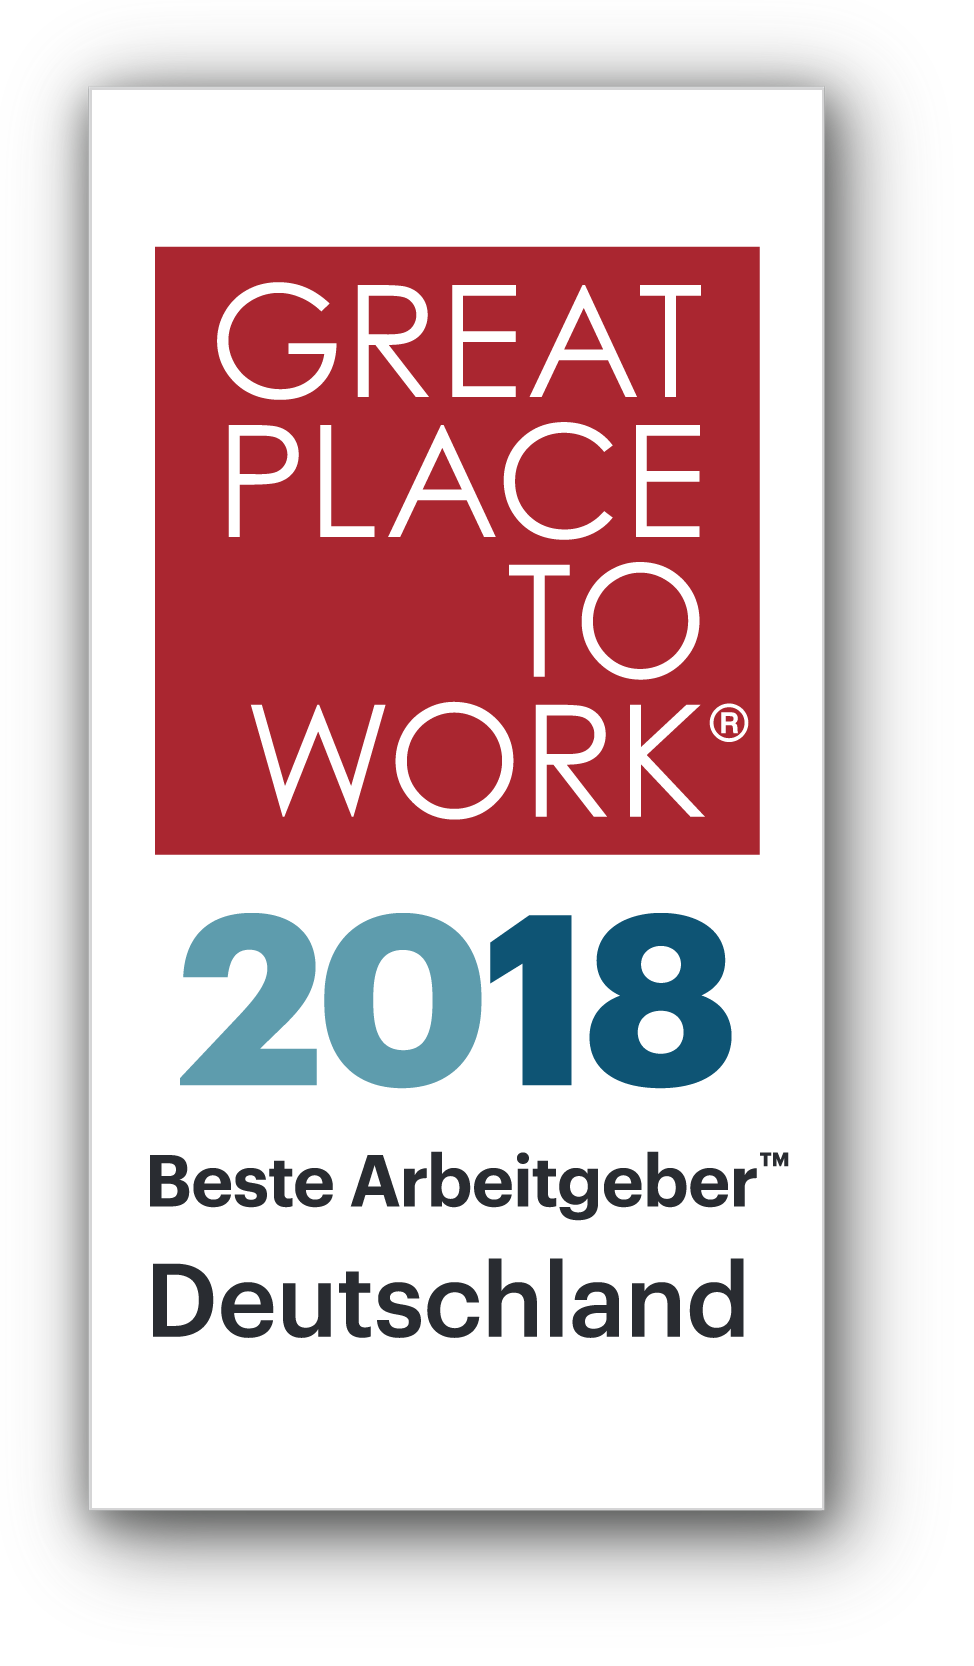 Great place to work, Deutschlands Beste Arbeitgeber 2014